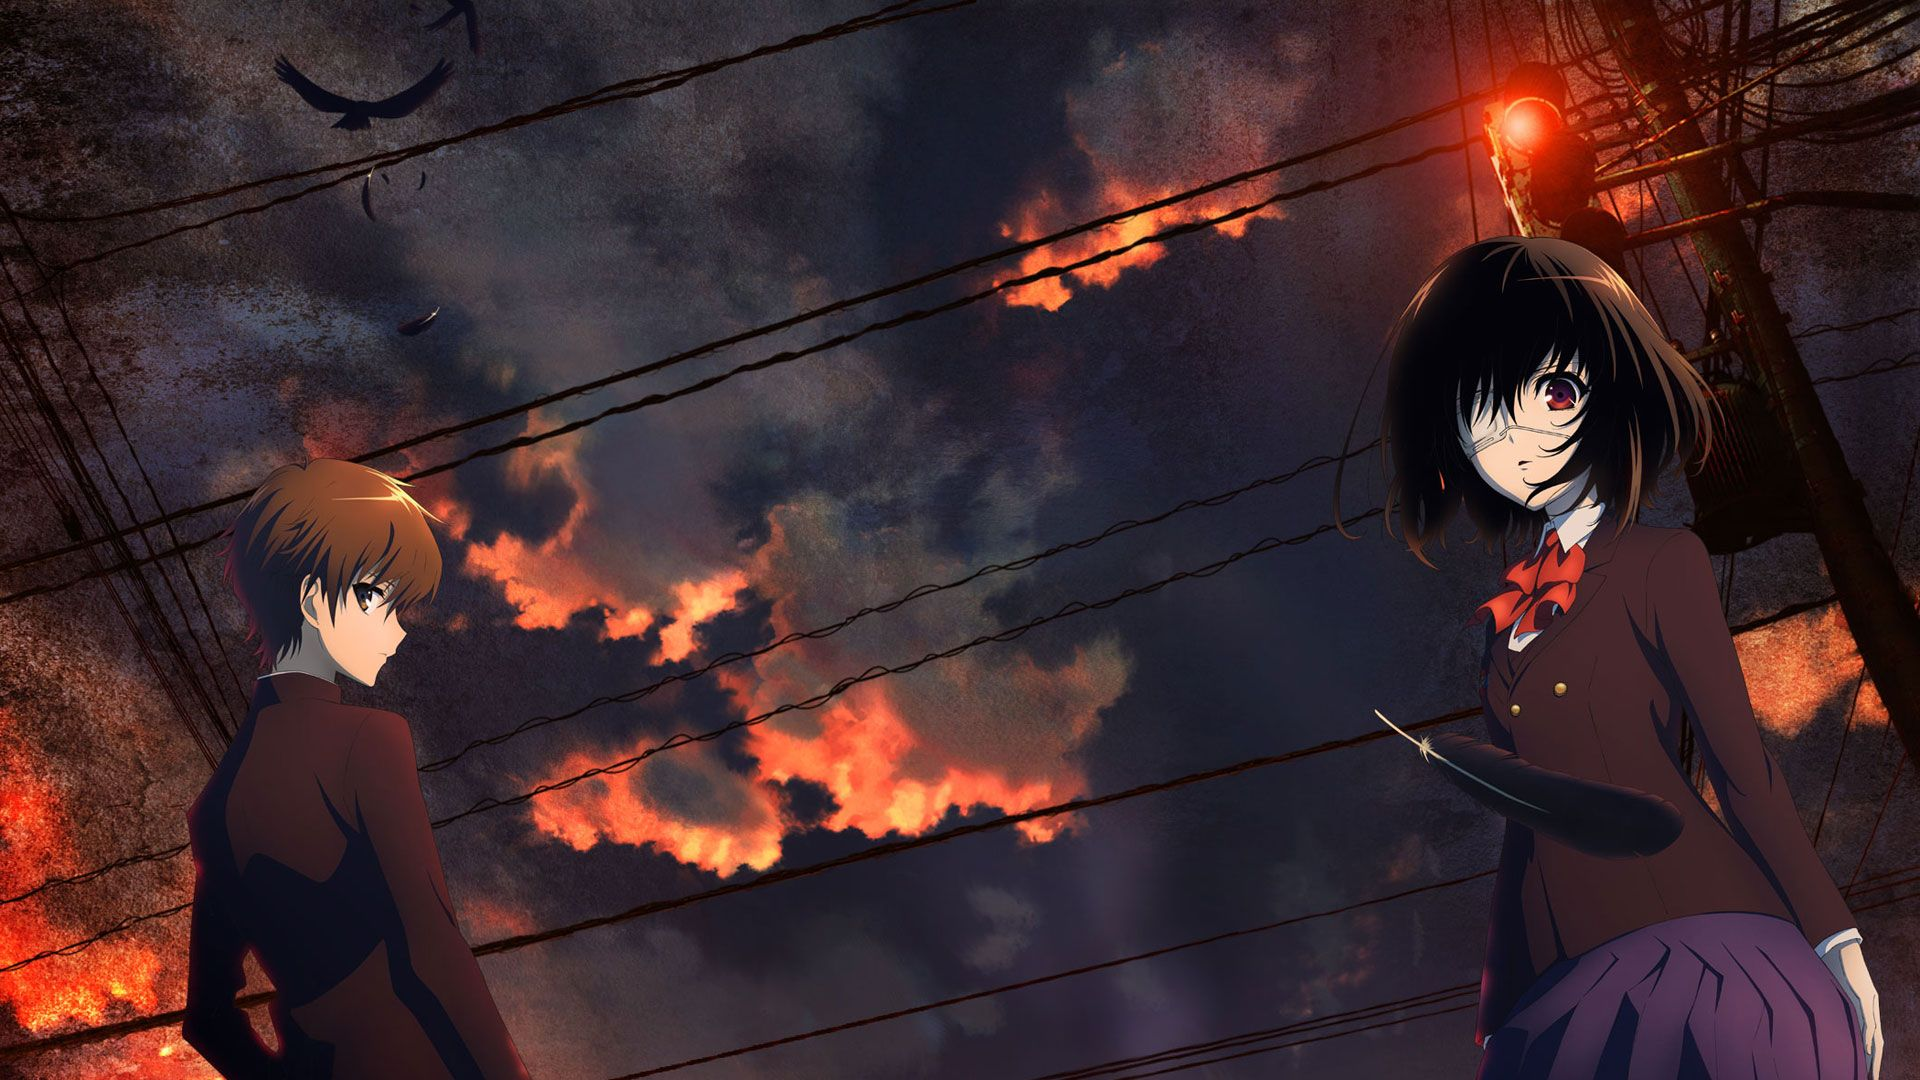 Another, Anime, Misaki Mei, Anime Girls Wallpapers HD / Desktop ...